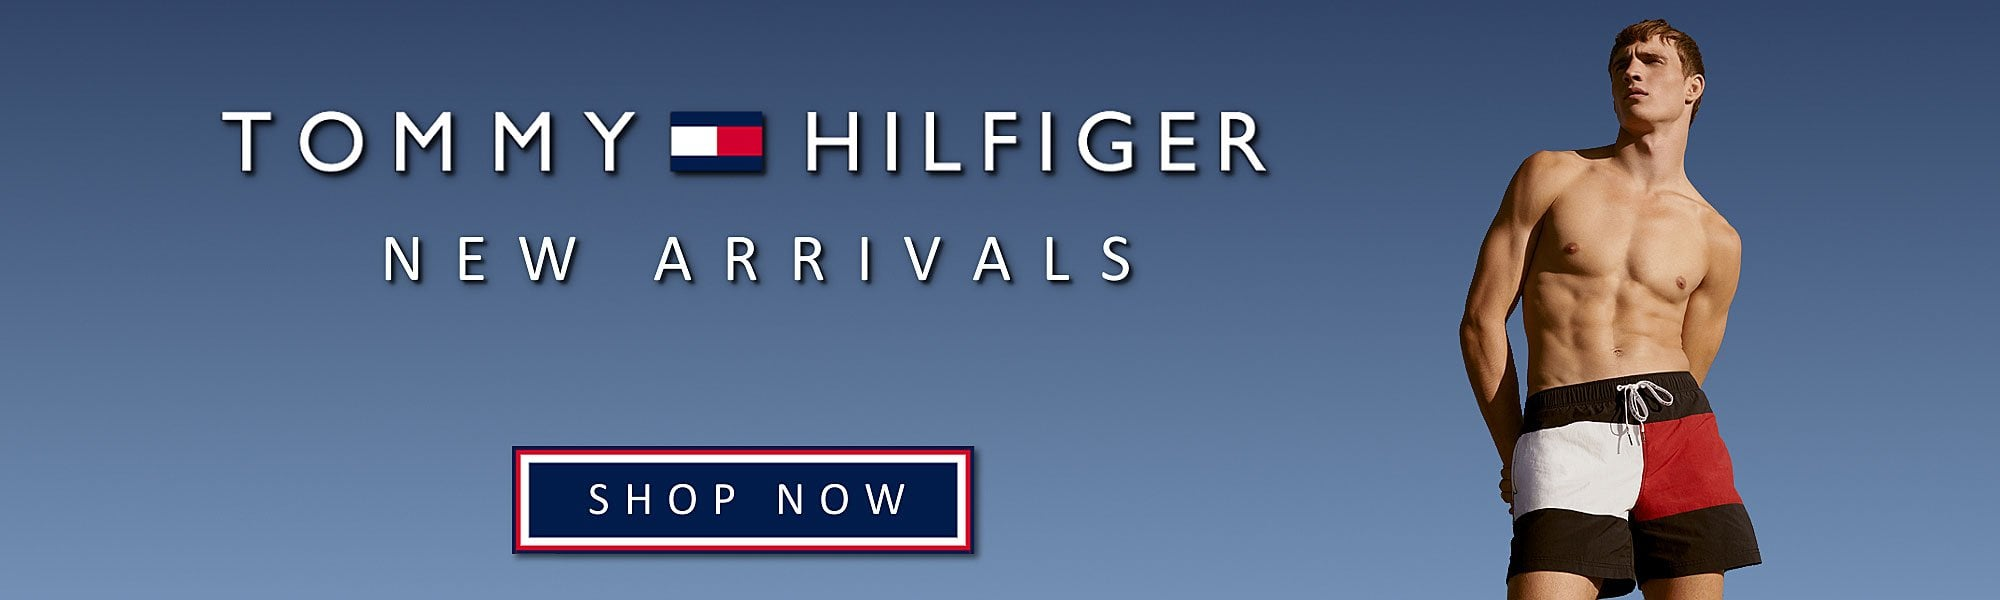 BUY Tommy Hilfiger New Arrivals